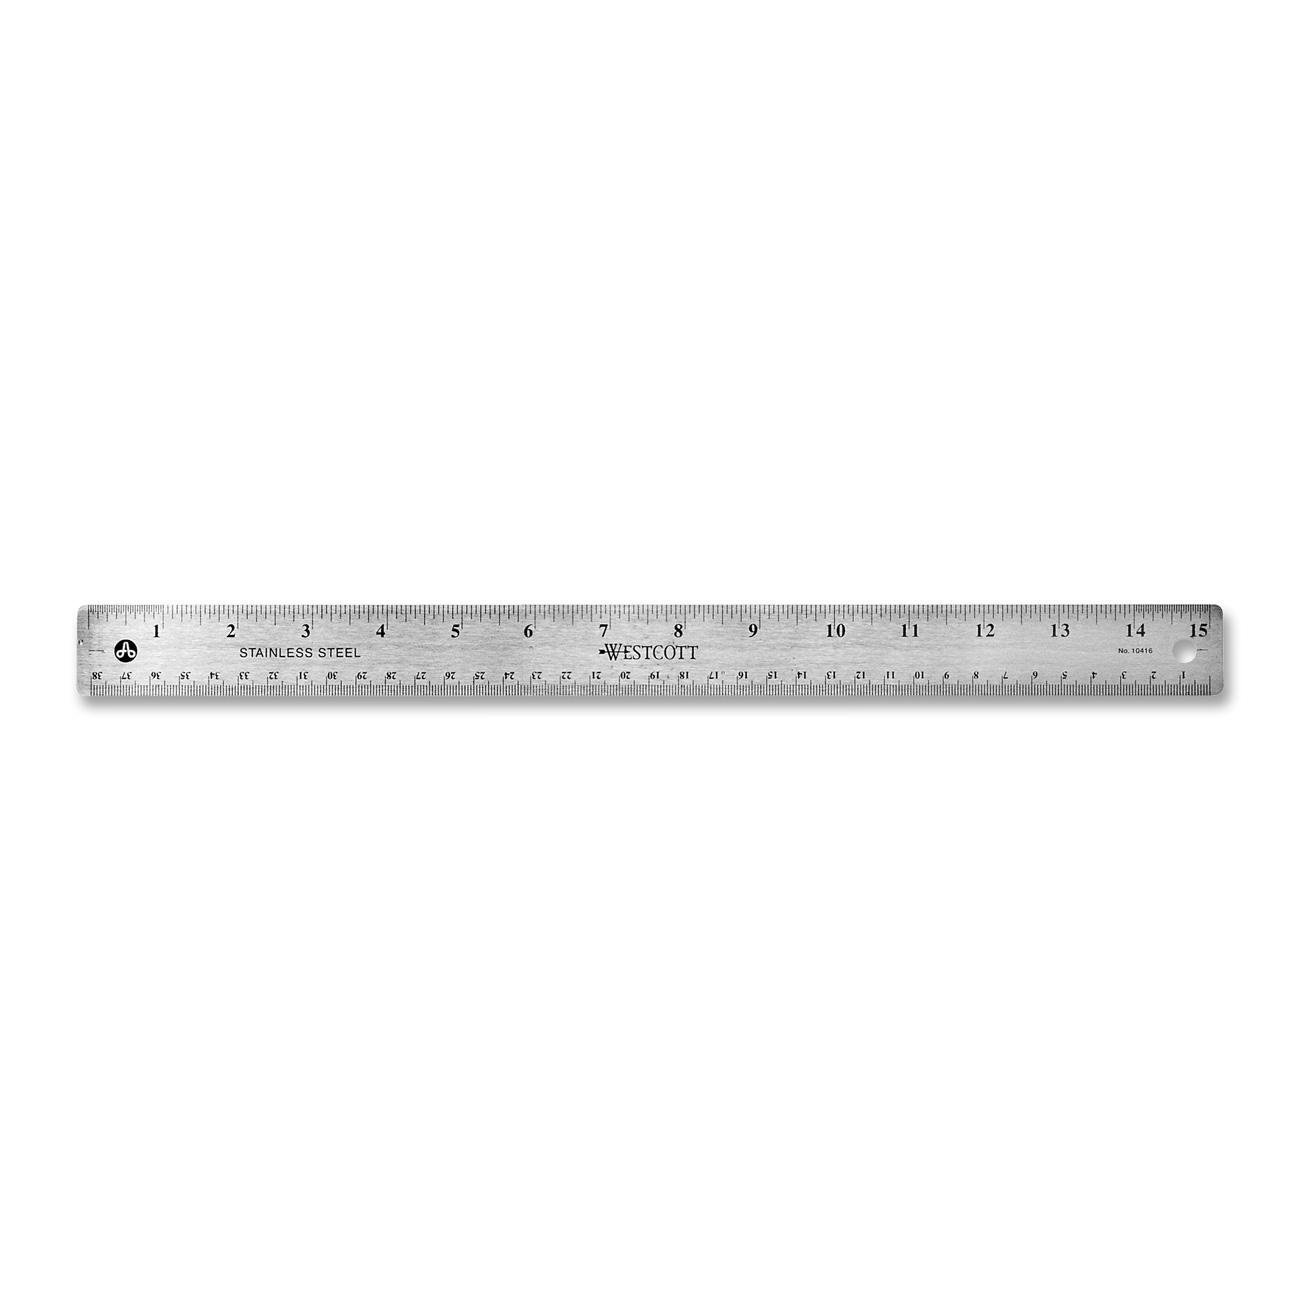 Westcott Stainless Steel 15-Inch Office Ruler with Non Slip Cork Base, Case of 240 (500-10416)